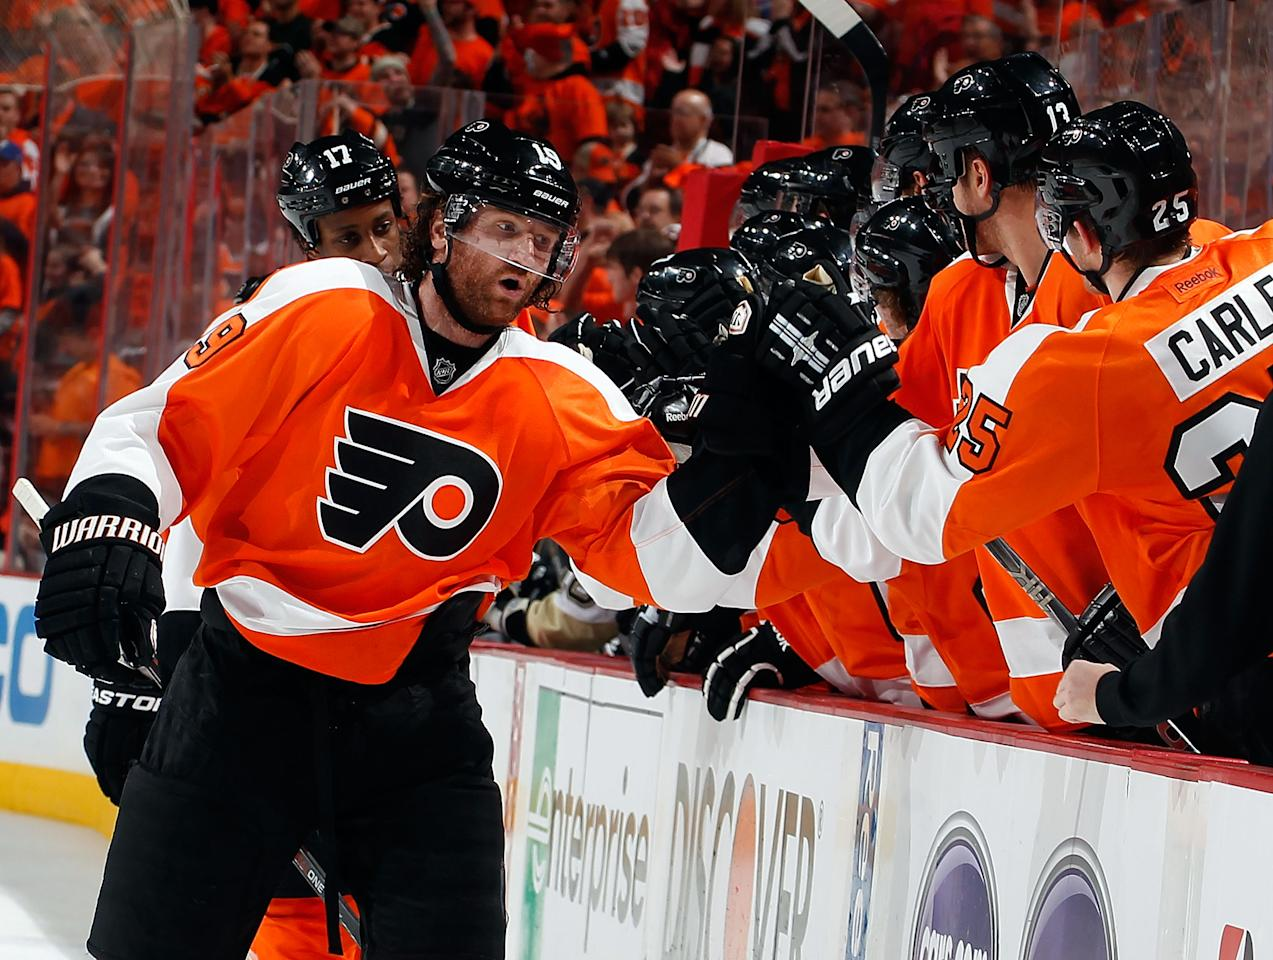 PHILADELPHIA, PA - APRIL 22:  Scott Hartnell #19 of the Philadelphia Flyers celebrates his goal with teammates at the bench in the first period of Game Six of the Eastern Conference Quarterfinals against the Pittsburgh Penguins during the 2012 NHL Stanley Cup Playoffs at Wells Fargo Center on April 22, 2012 in Philadelphia, Pennsylvania.  (Photo by Paul Bereswill/Getty Images)